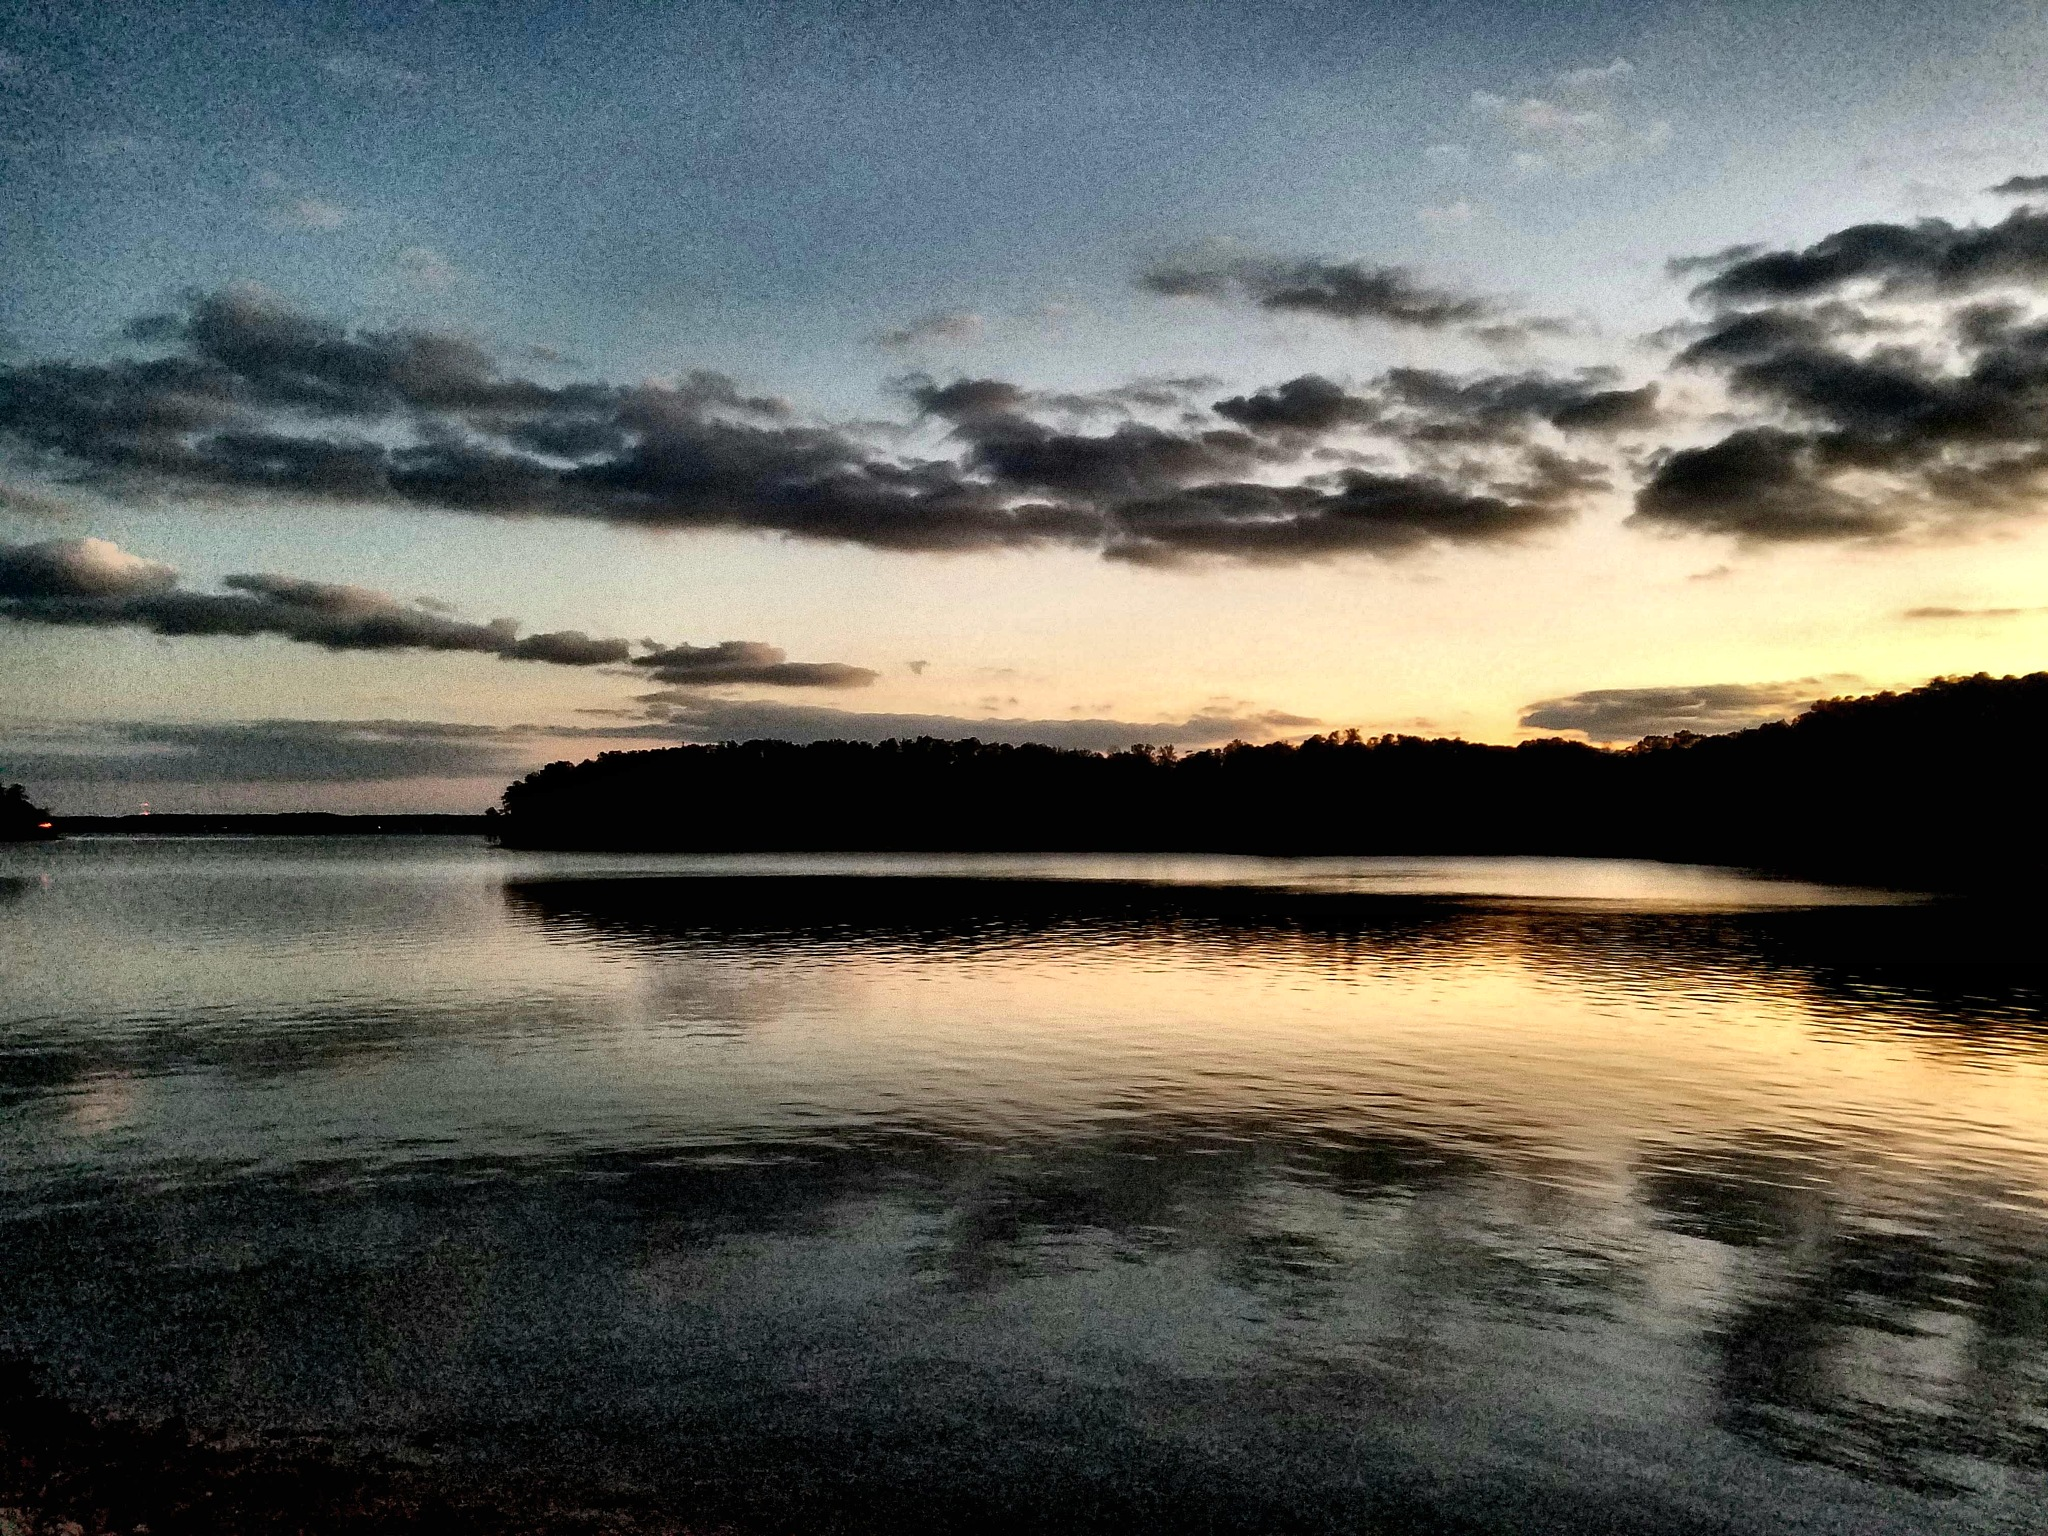 Reflections at dusk. by H. Rippen